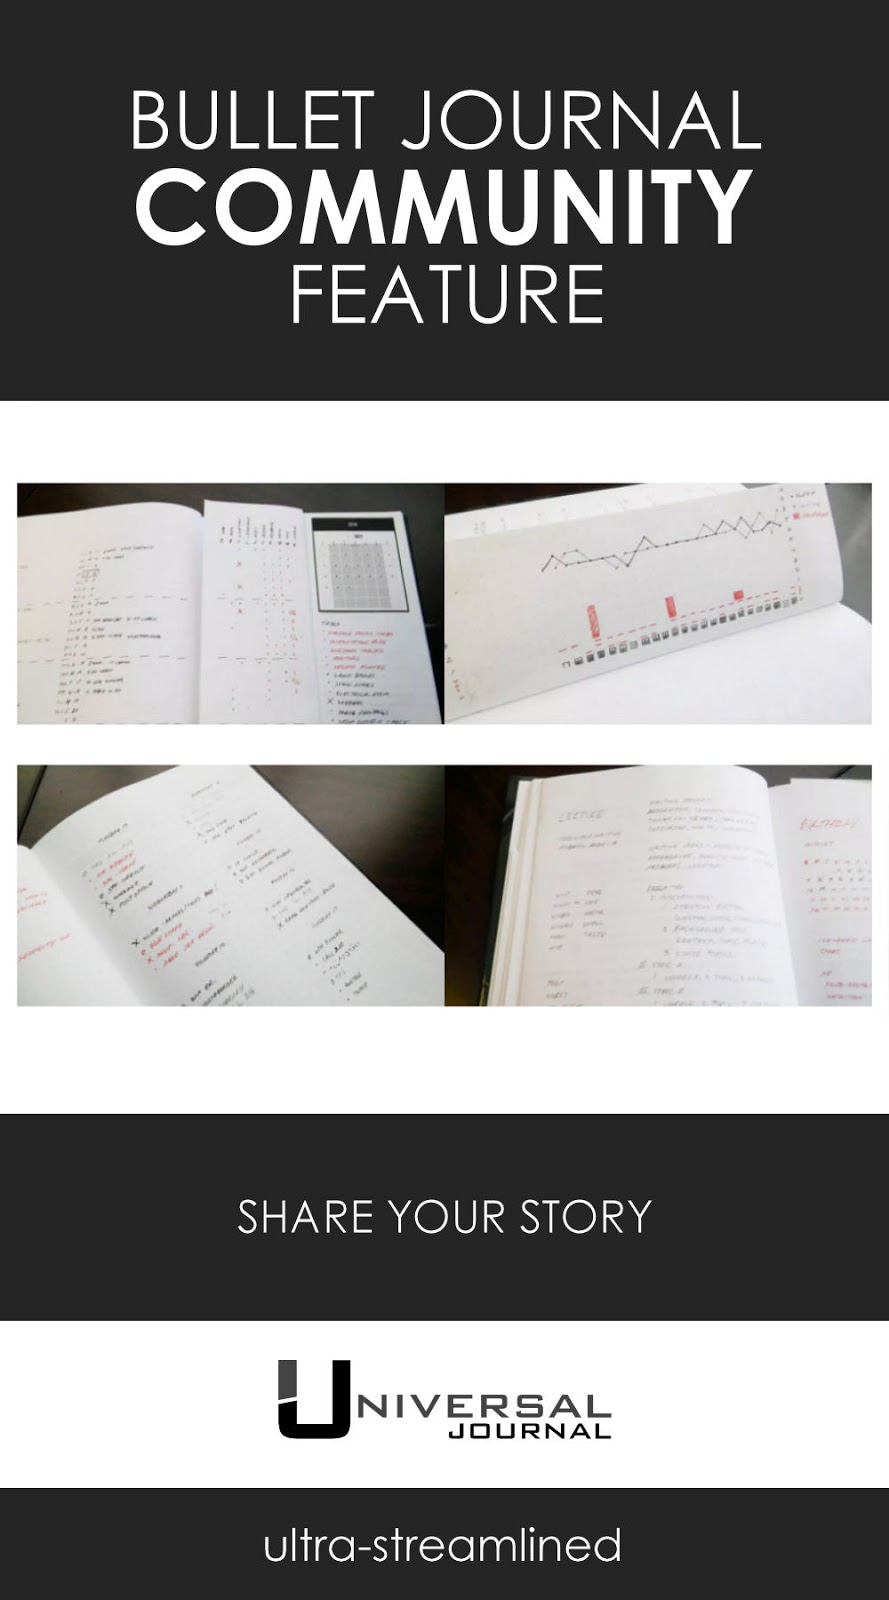 bullet journal community feature share